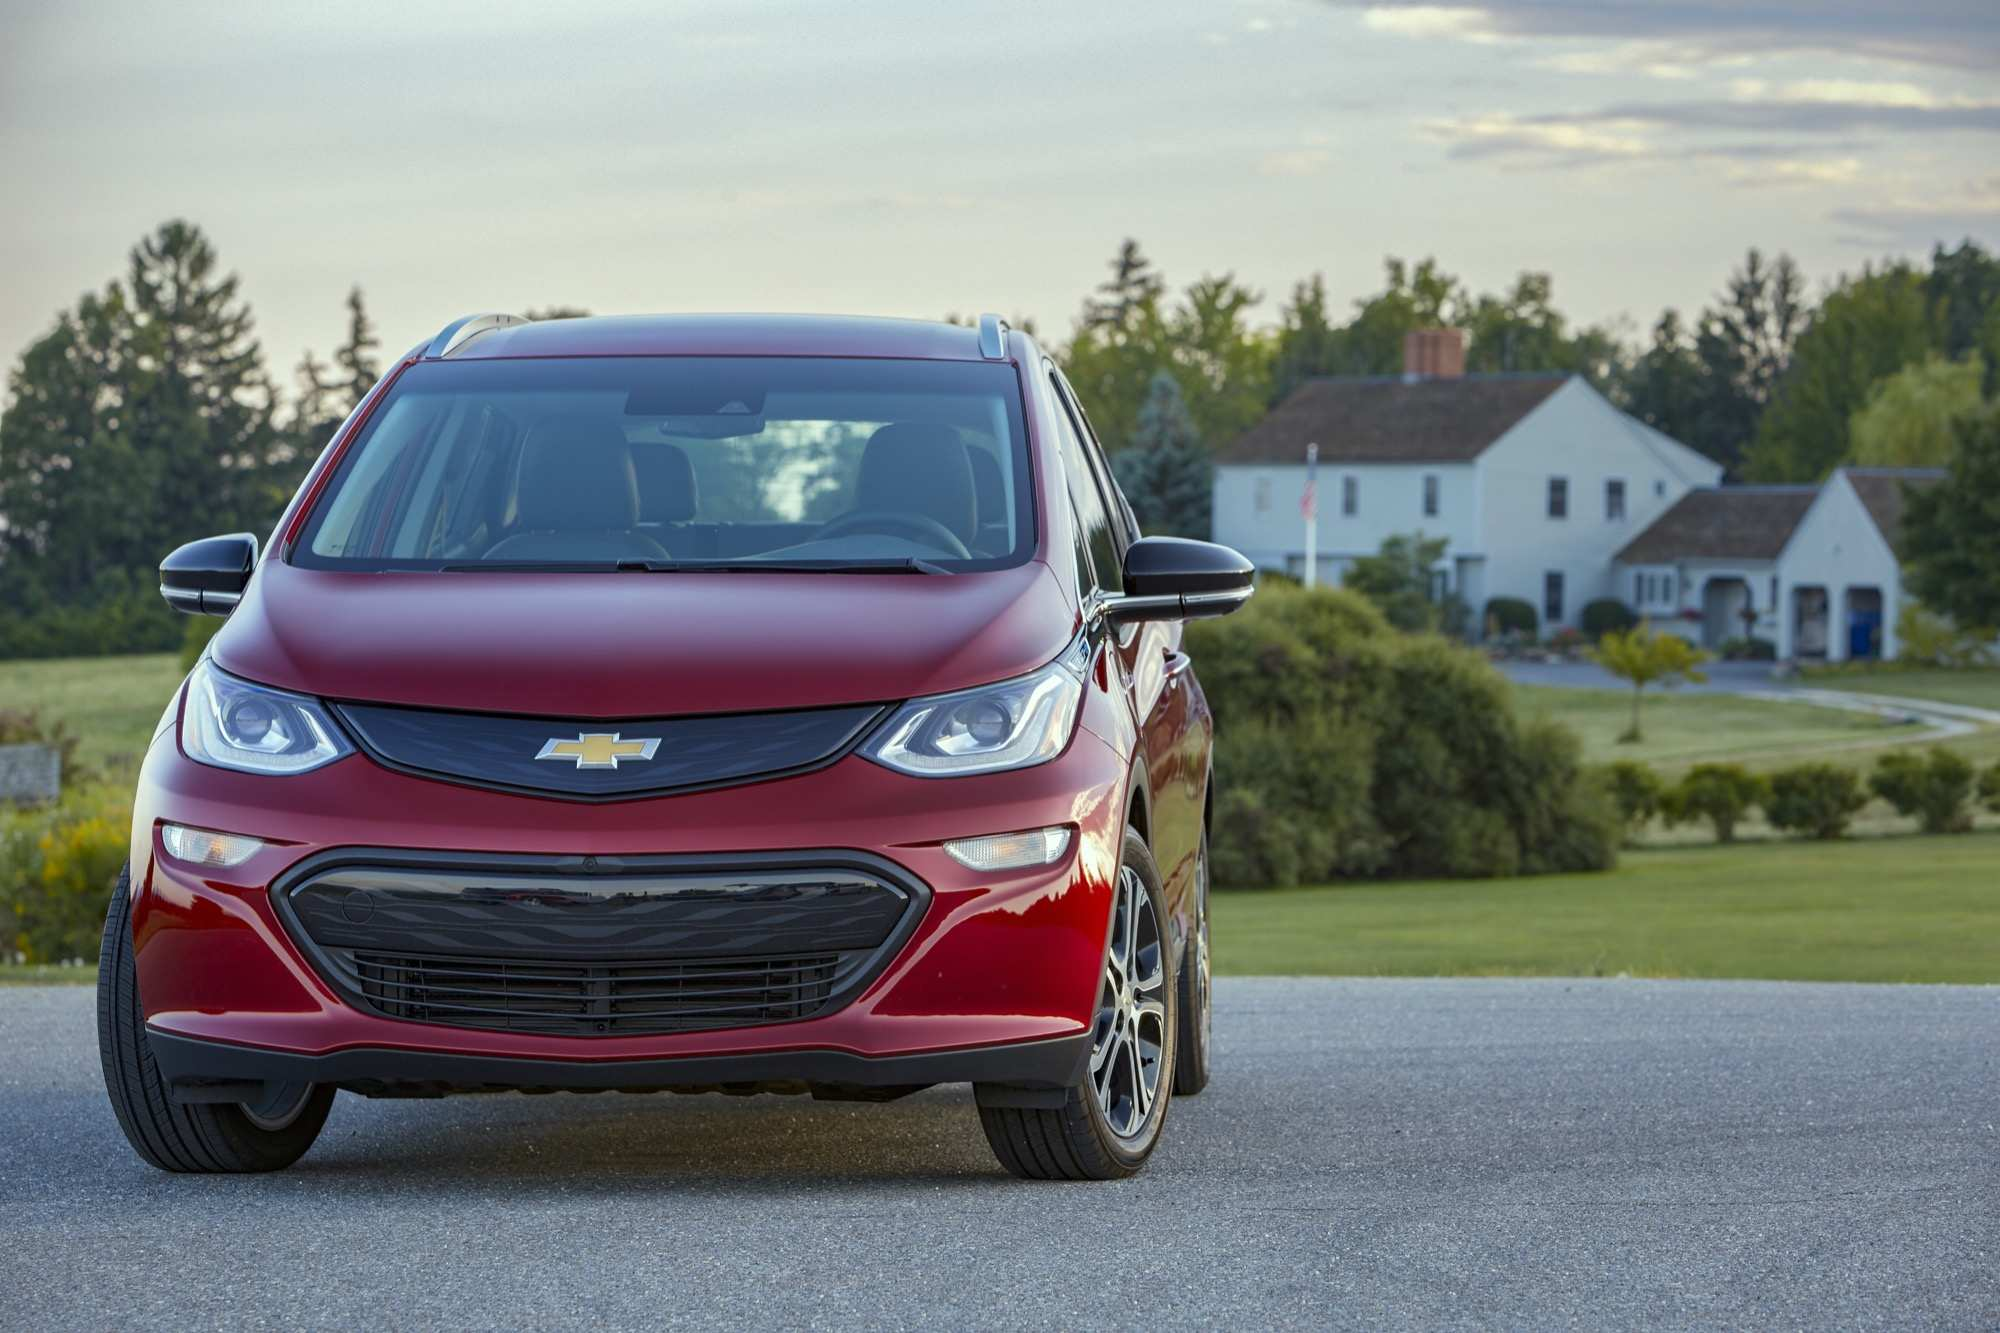 59 Gallery of Chevrolet Volt 2019 Canada First Drive New Concept for Chevrolet Volt 2019 Canada First Drive